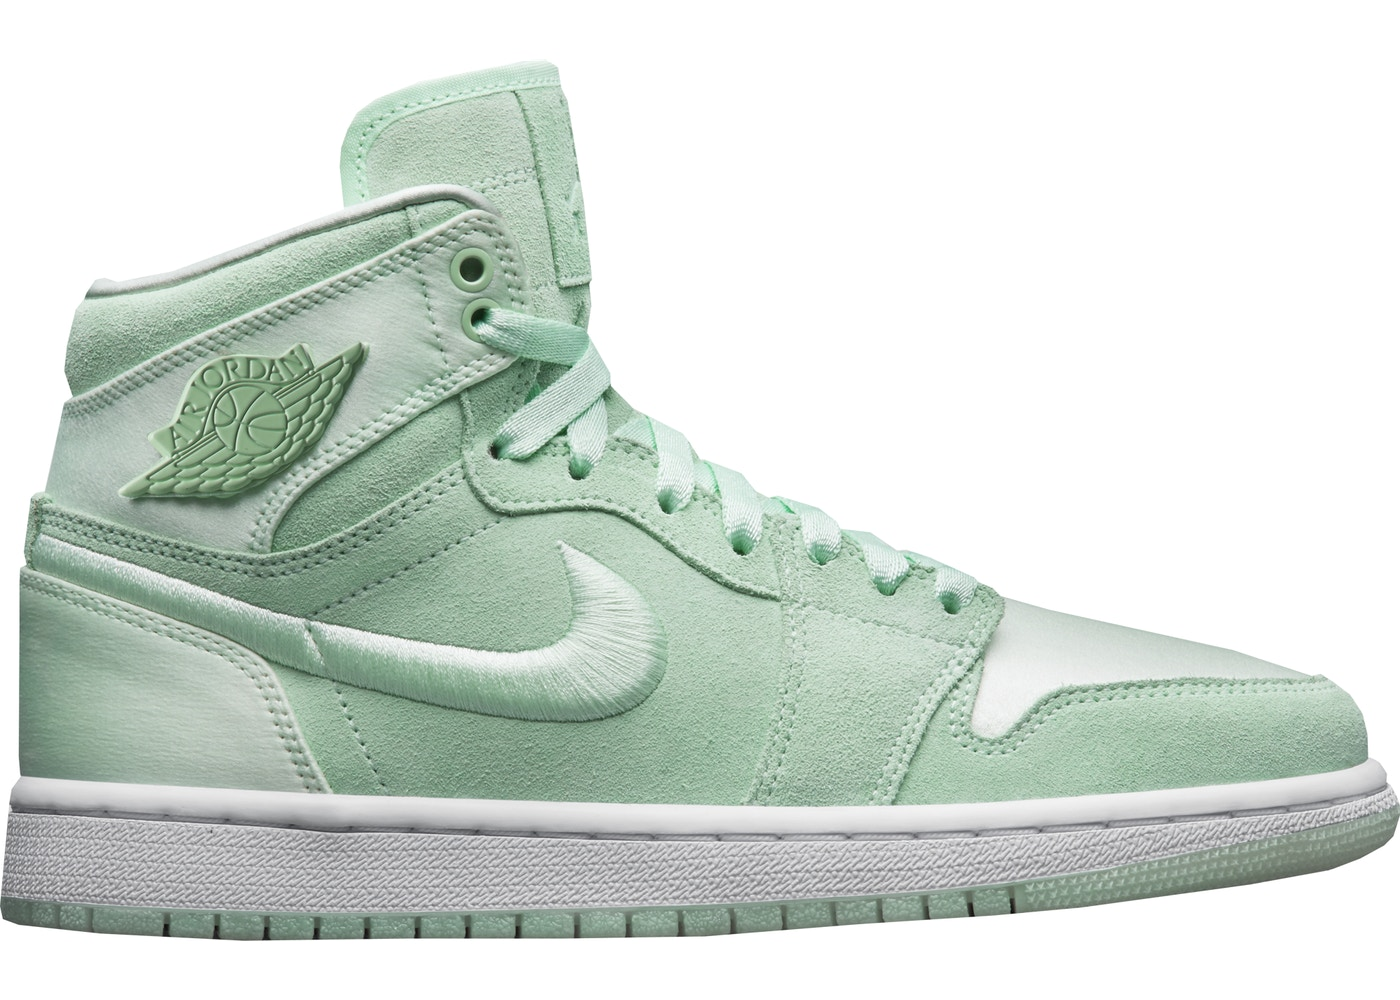 dbf3babd4fa HypeAnalyzer · Jordan 1 Retro High Season of Her Mint Foam (W)